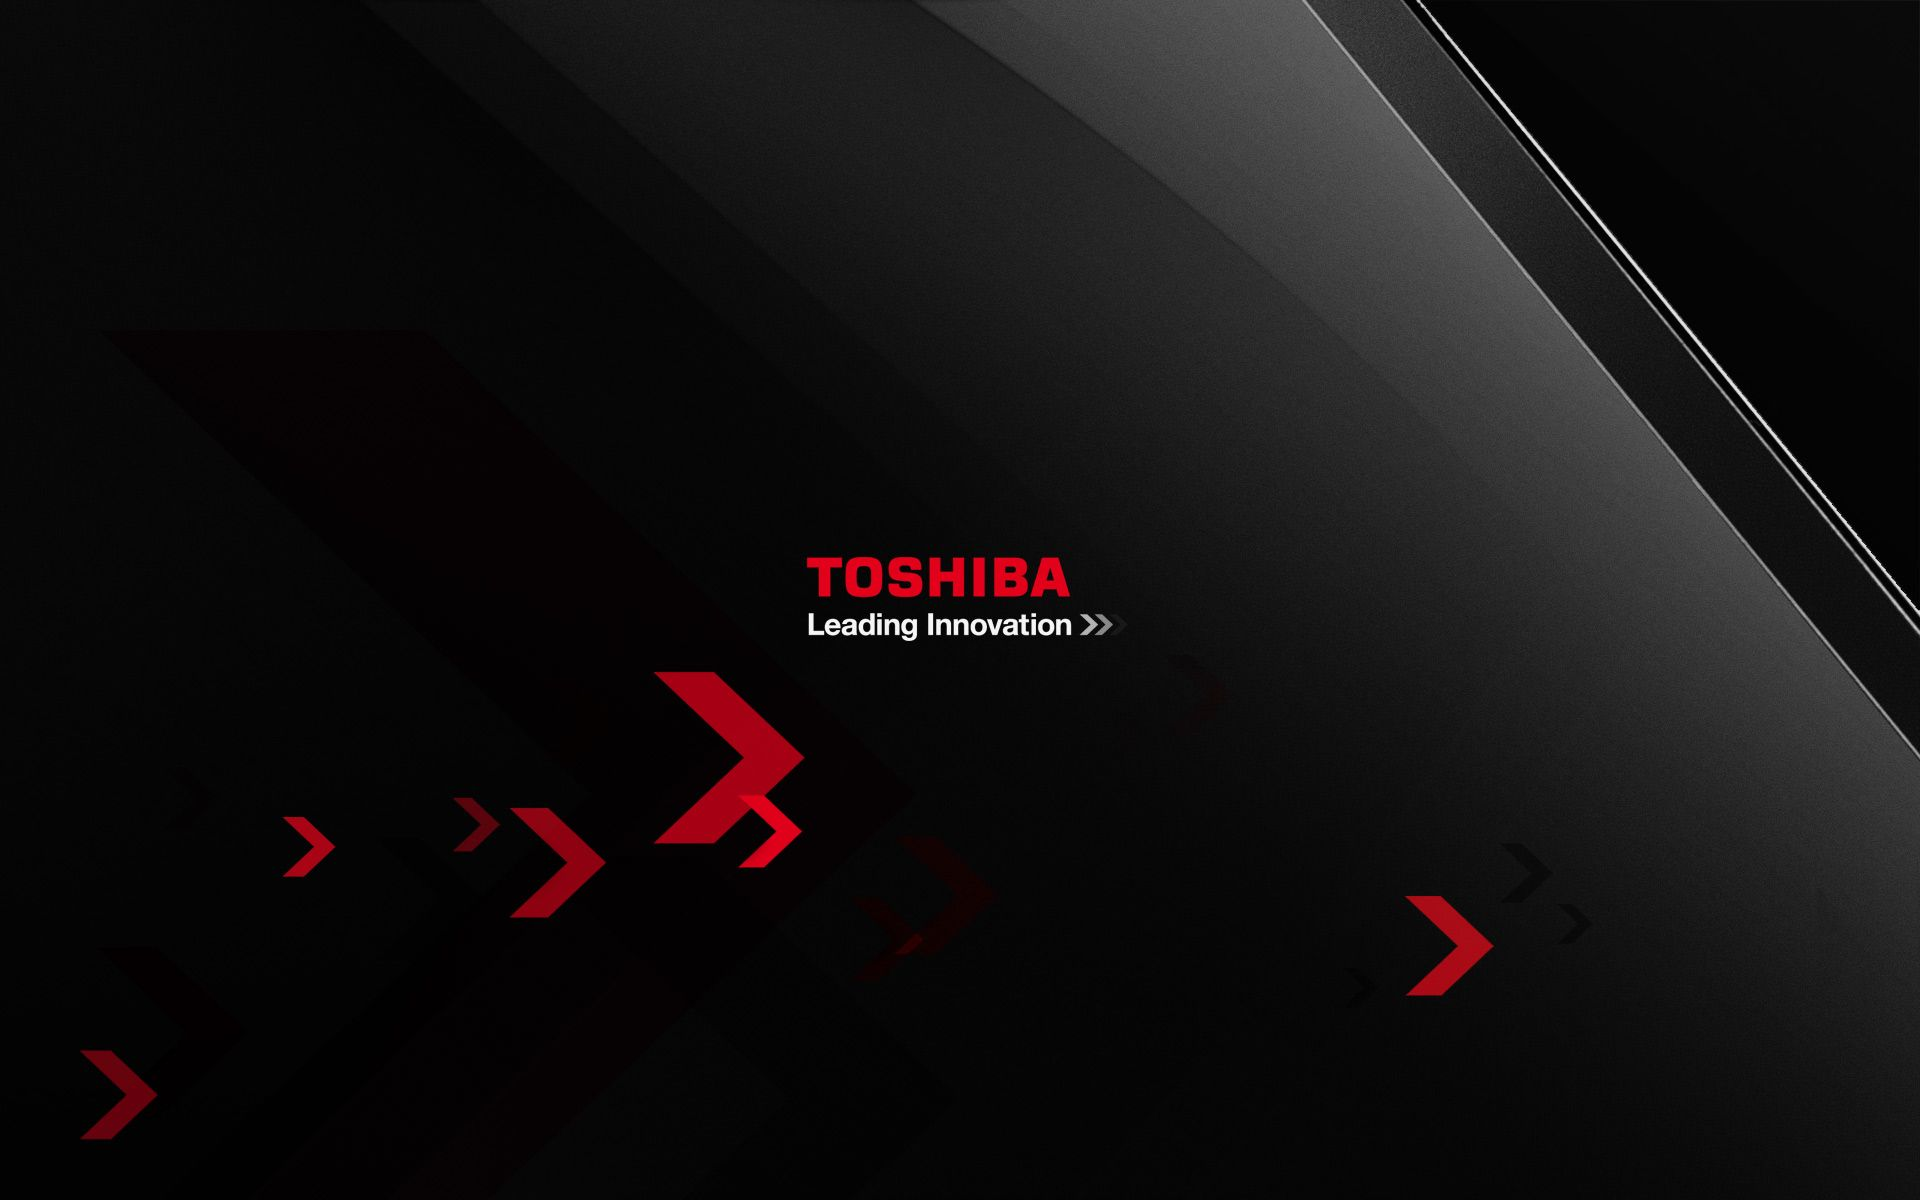 Toshiba Desktop Backgrounds - Wallpaper Cave